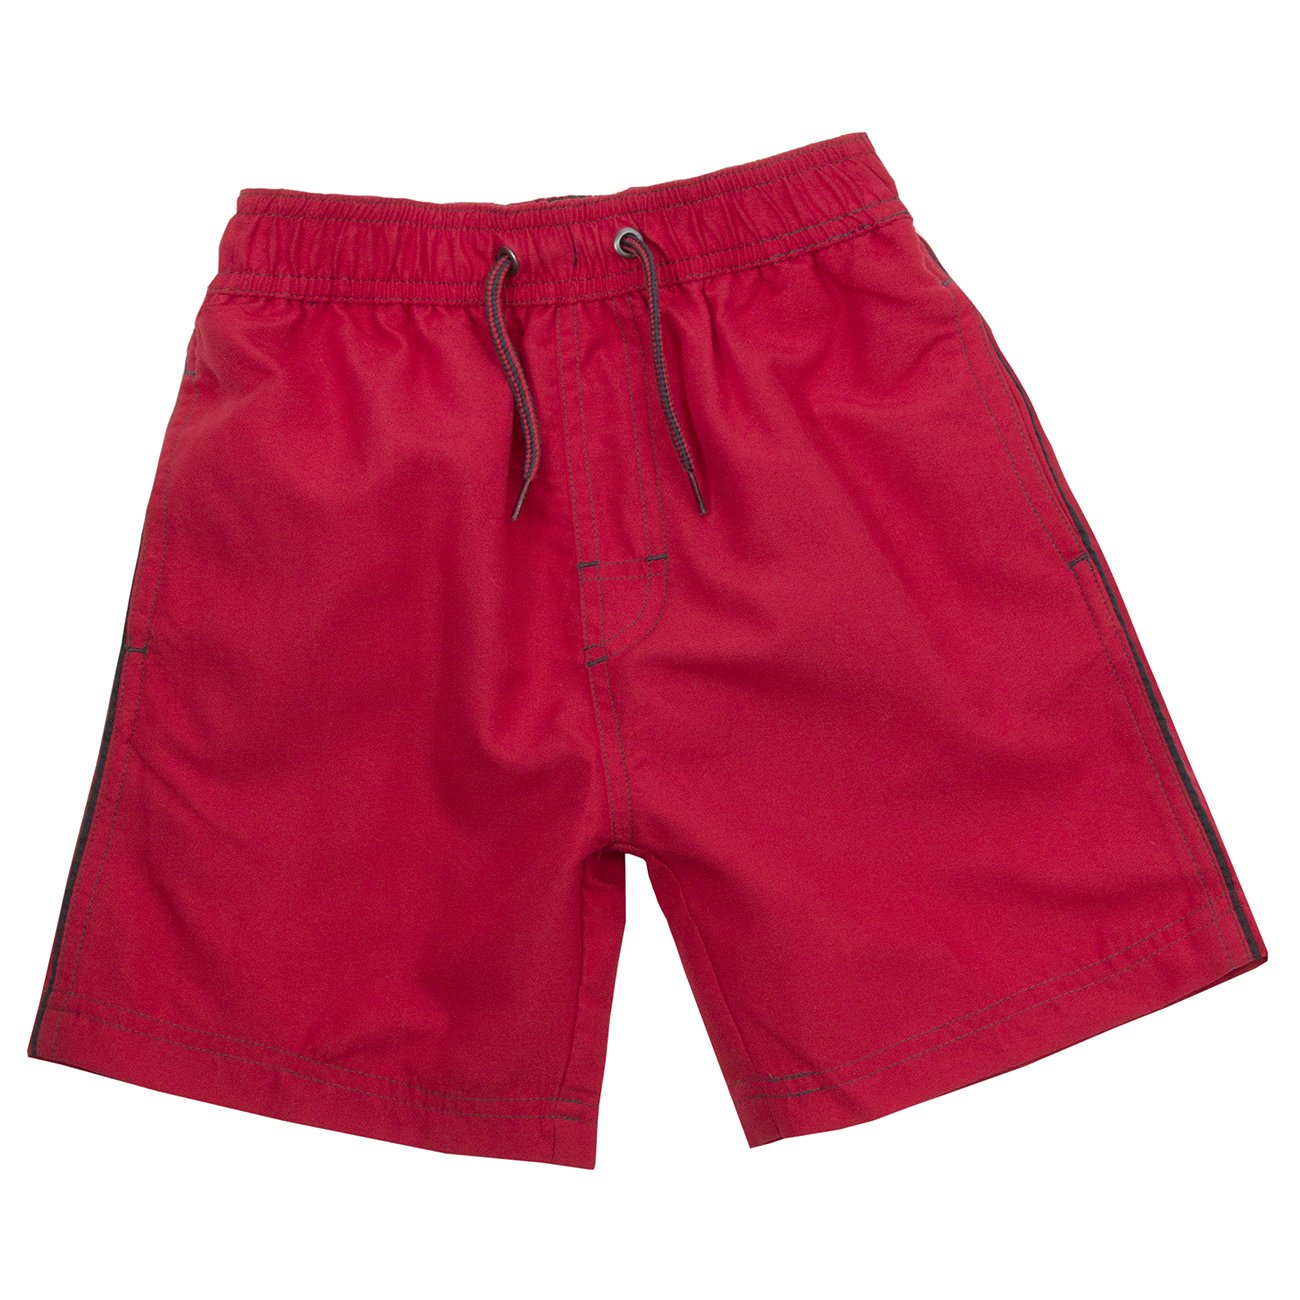 Cargo Bay Boys Swim Shorts with Contrast Side Piping